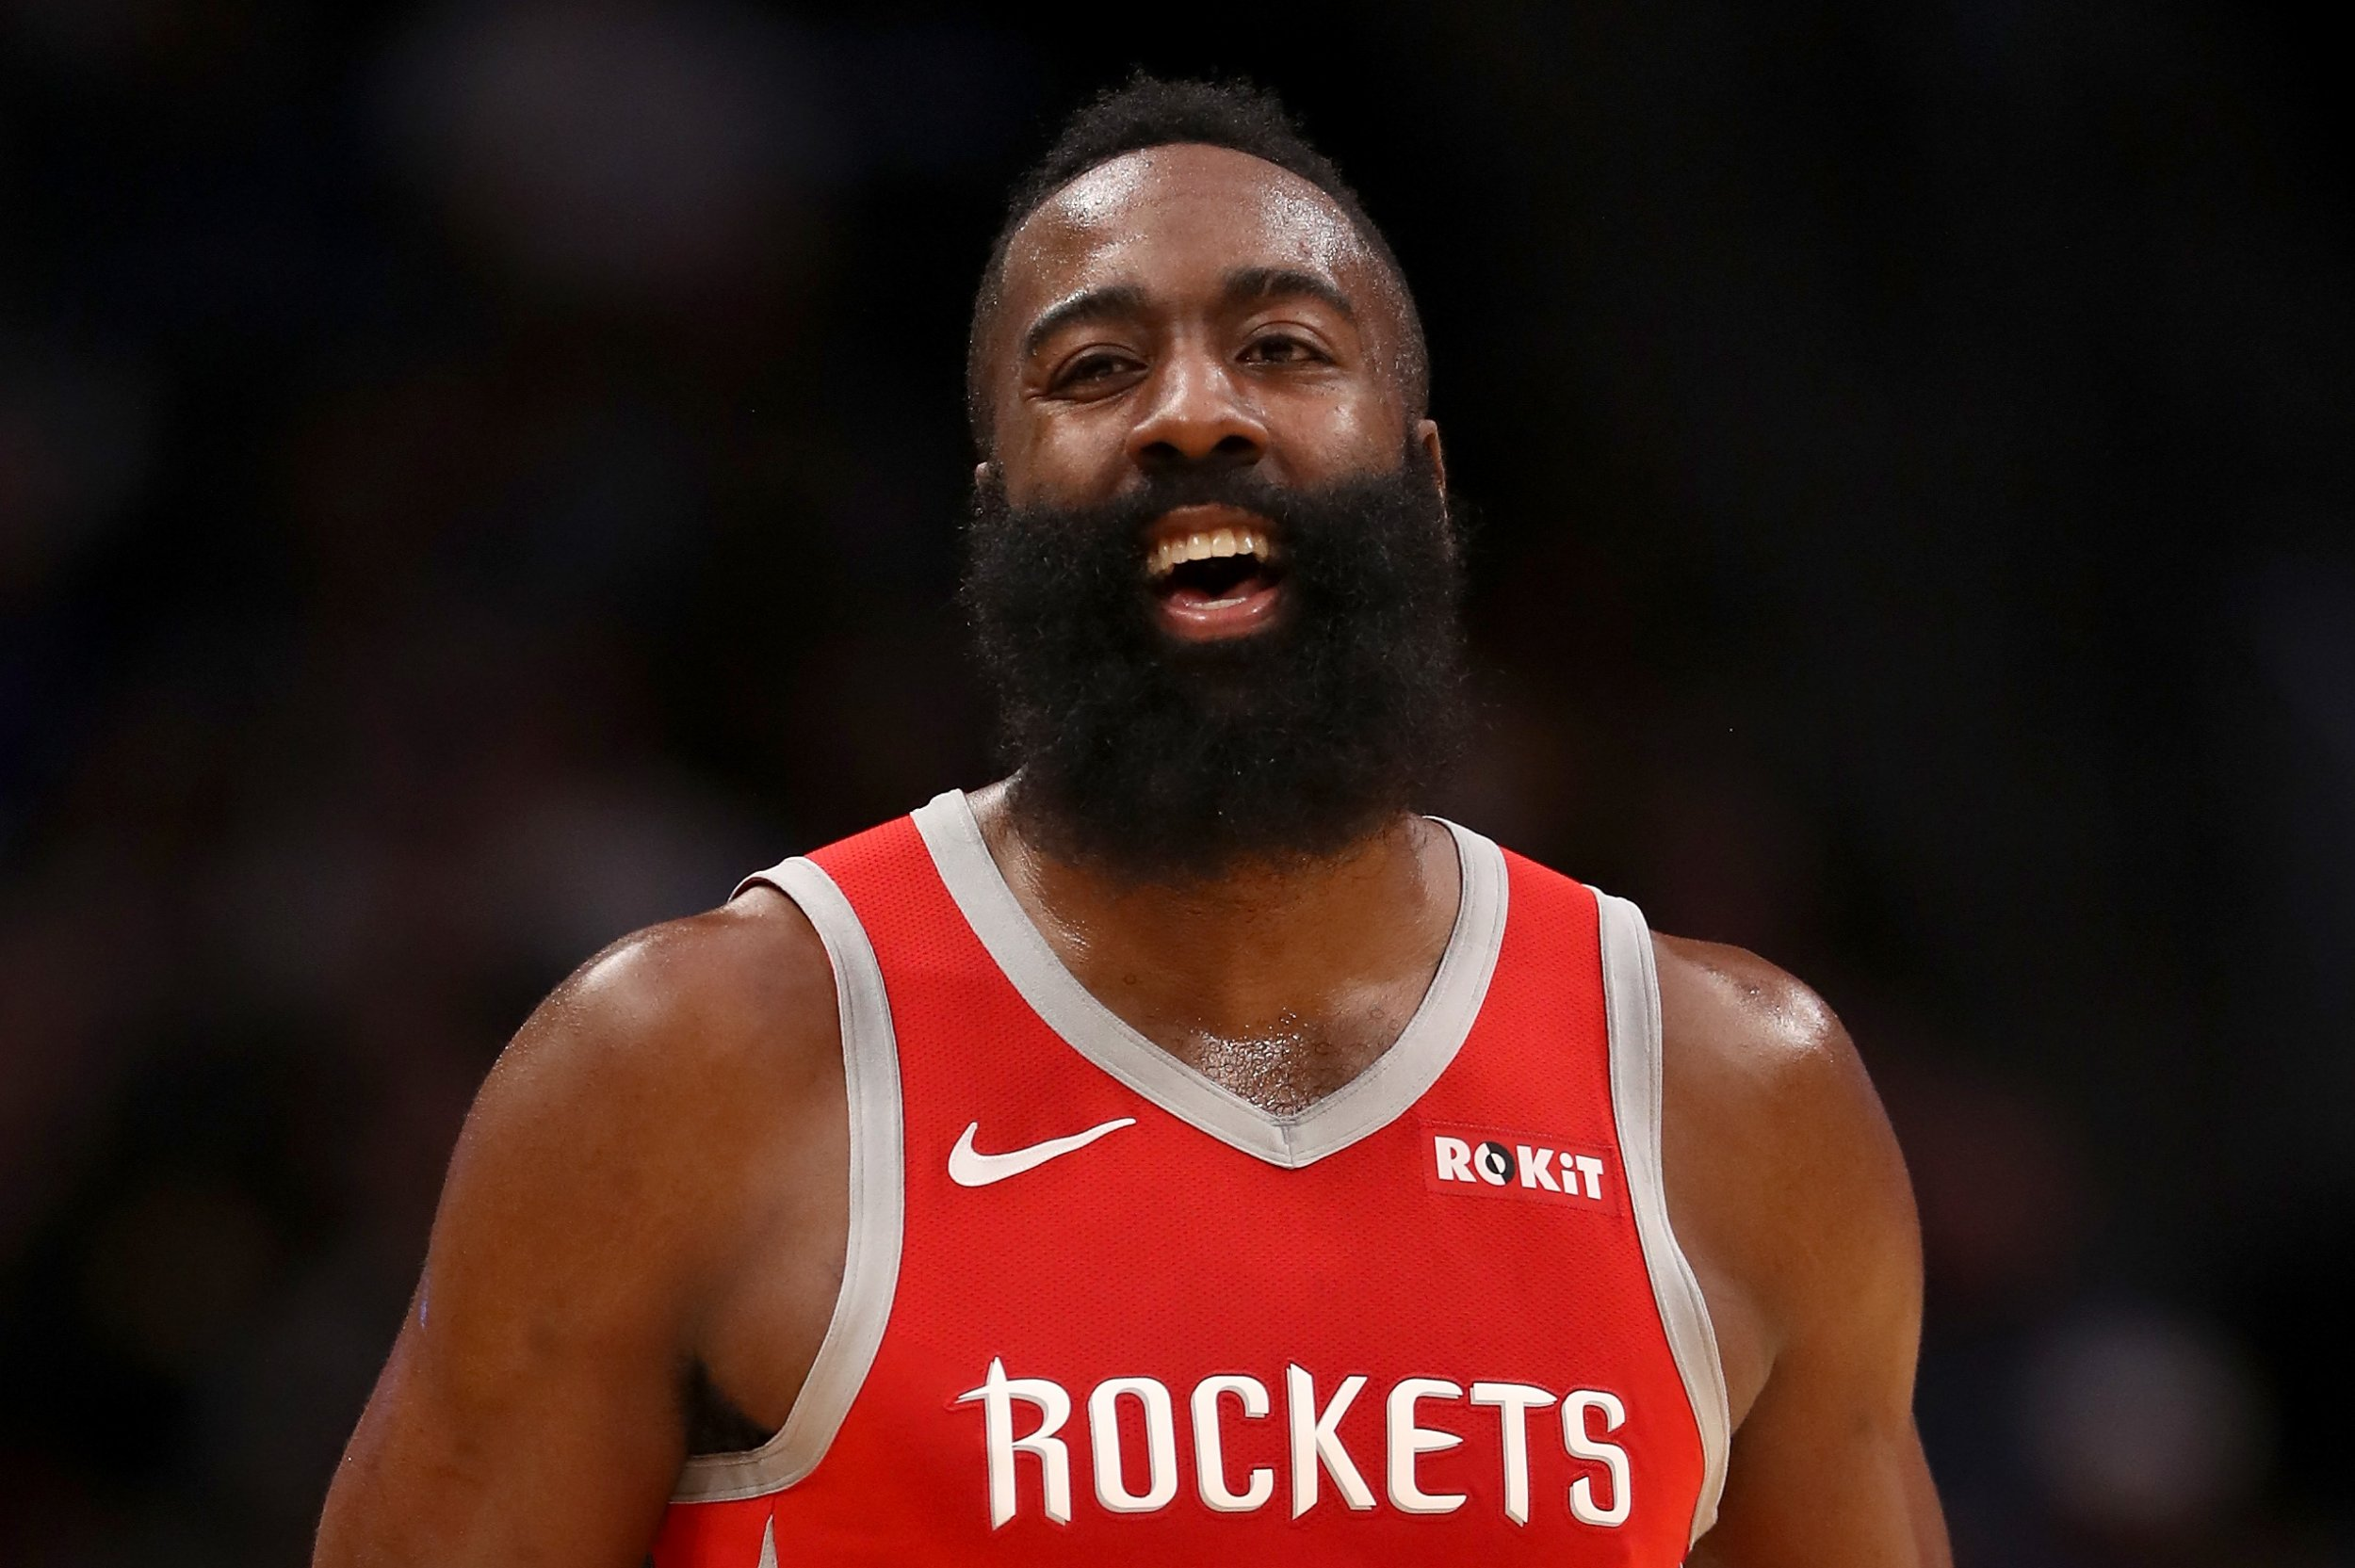 a95b21d4ed56 Can James Harden Win MVP Again  Rockets Star Scores 44 points as Houston  Beats Golden State